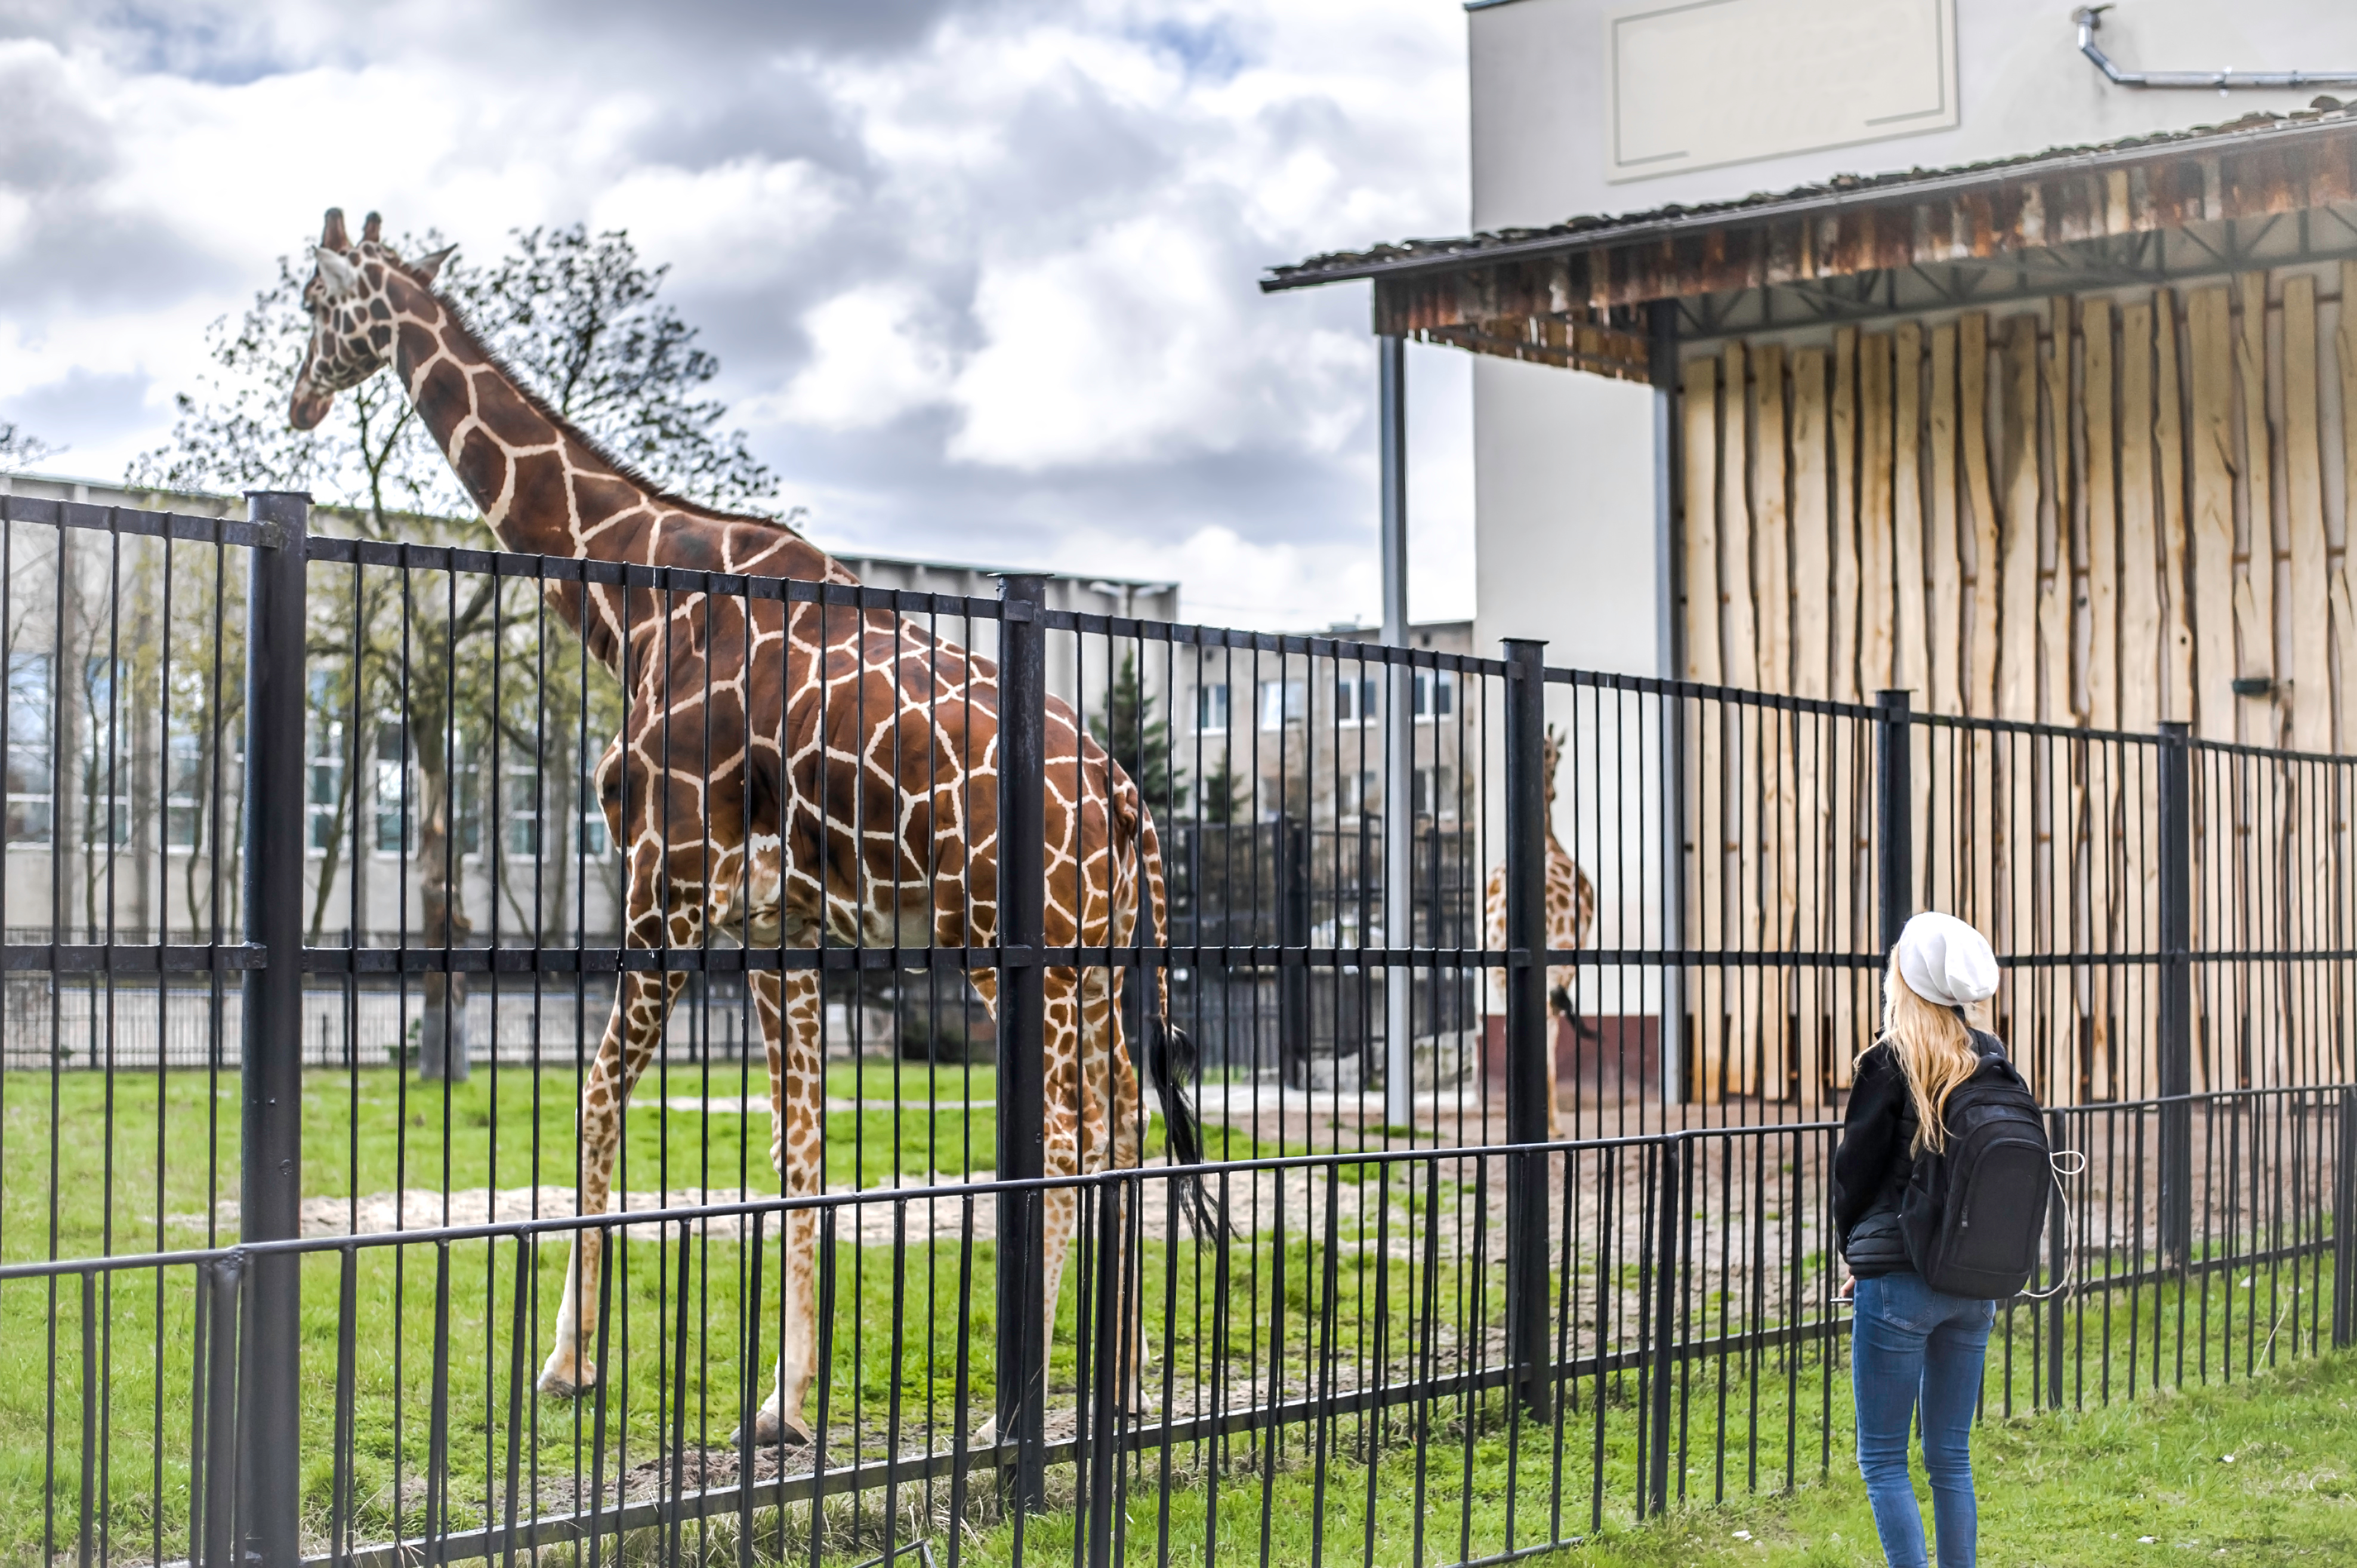 giraffe held captive with young woman looking at him from outside the gate